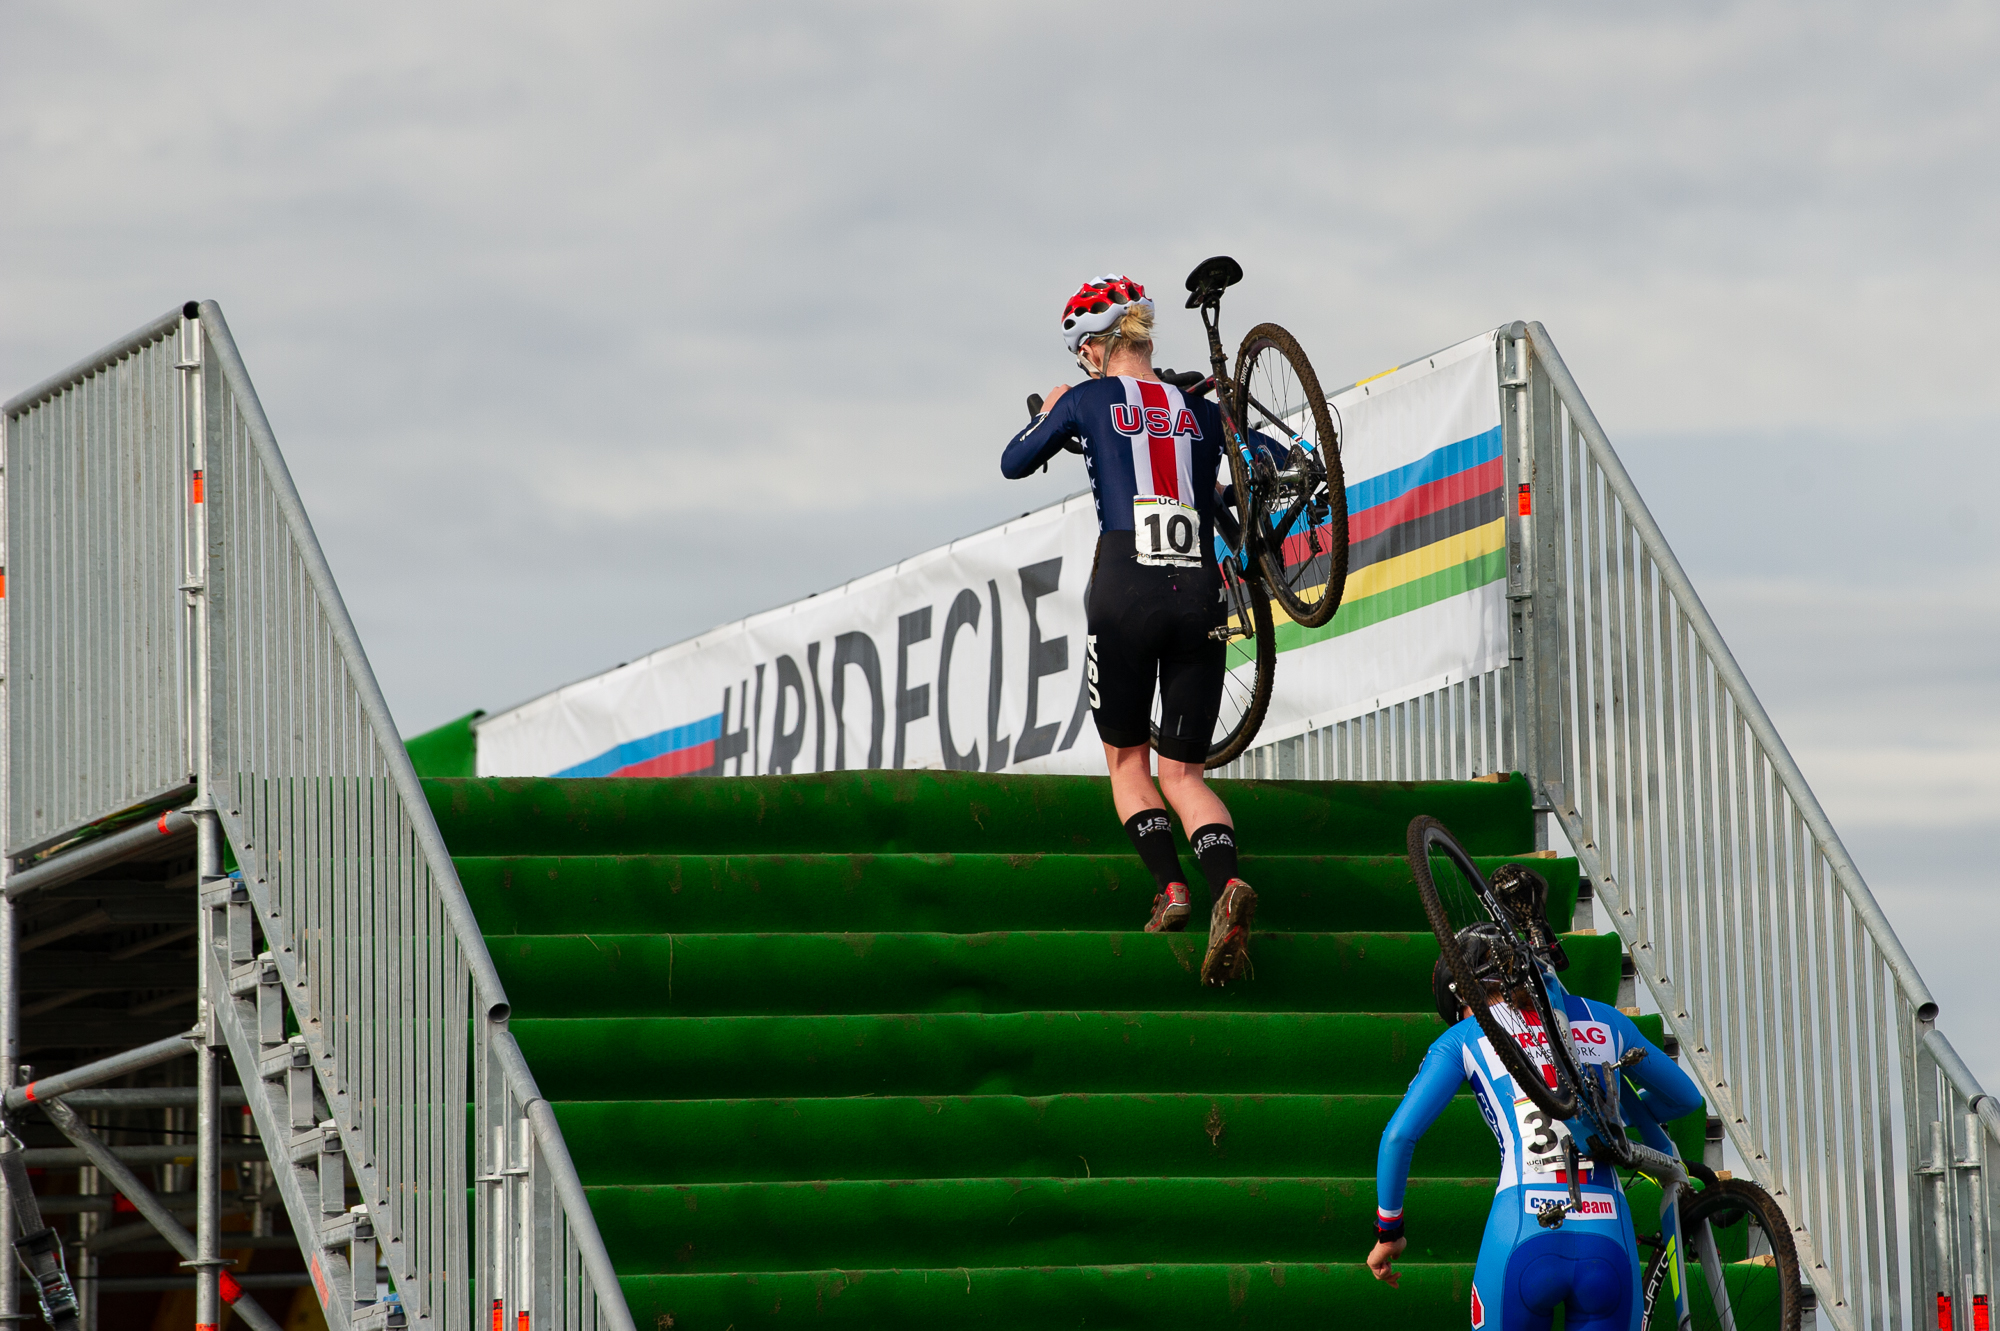 Cassidy Hickey carries her bike at the UCI Cyclocross World Championships